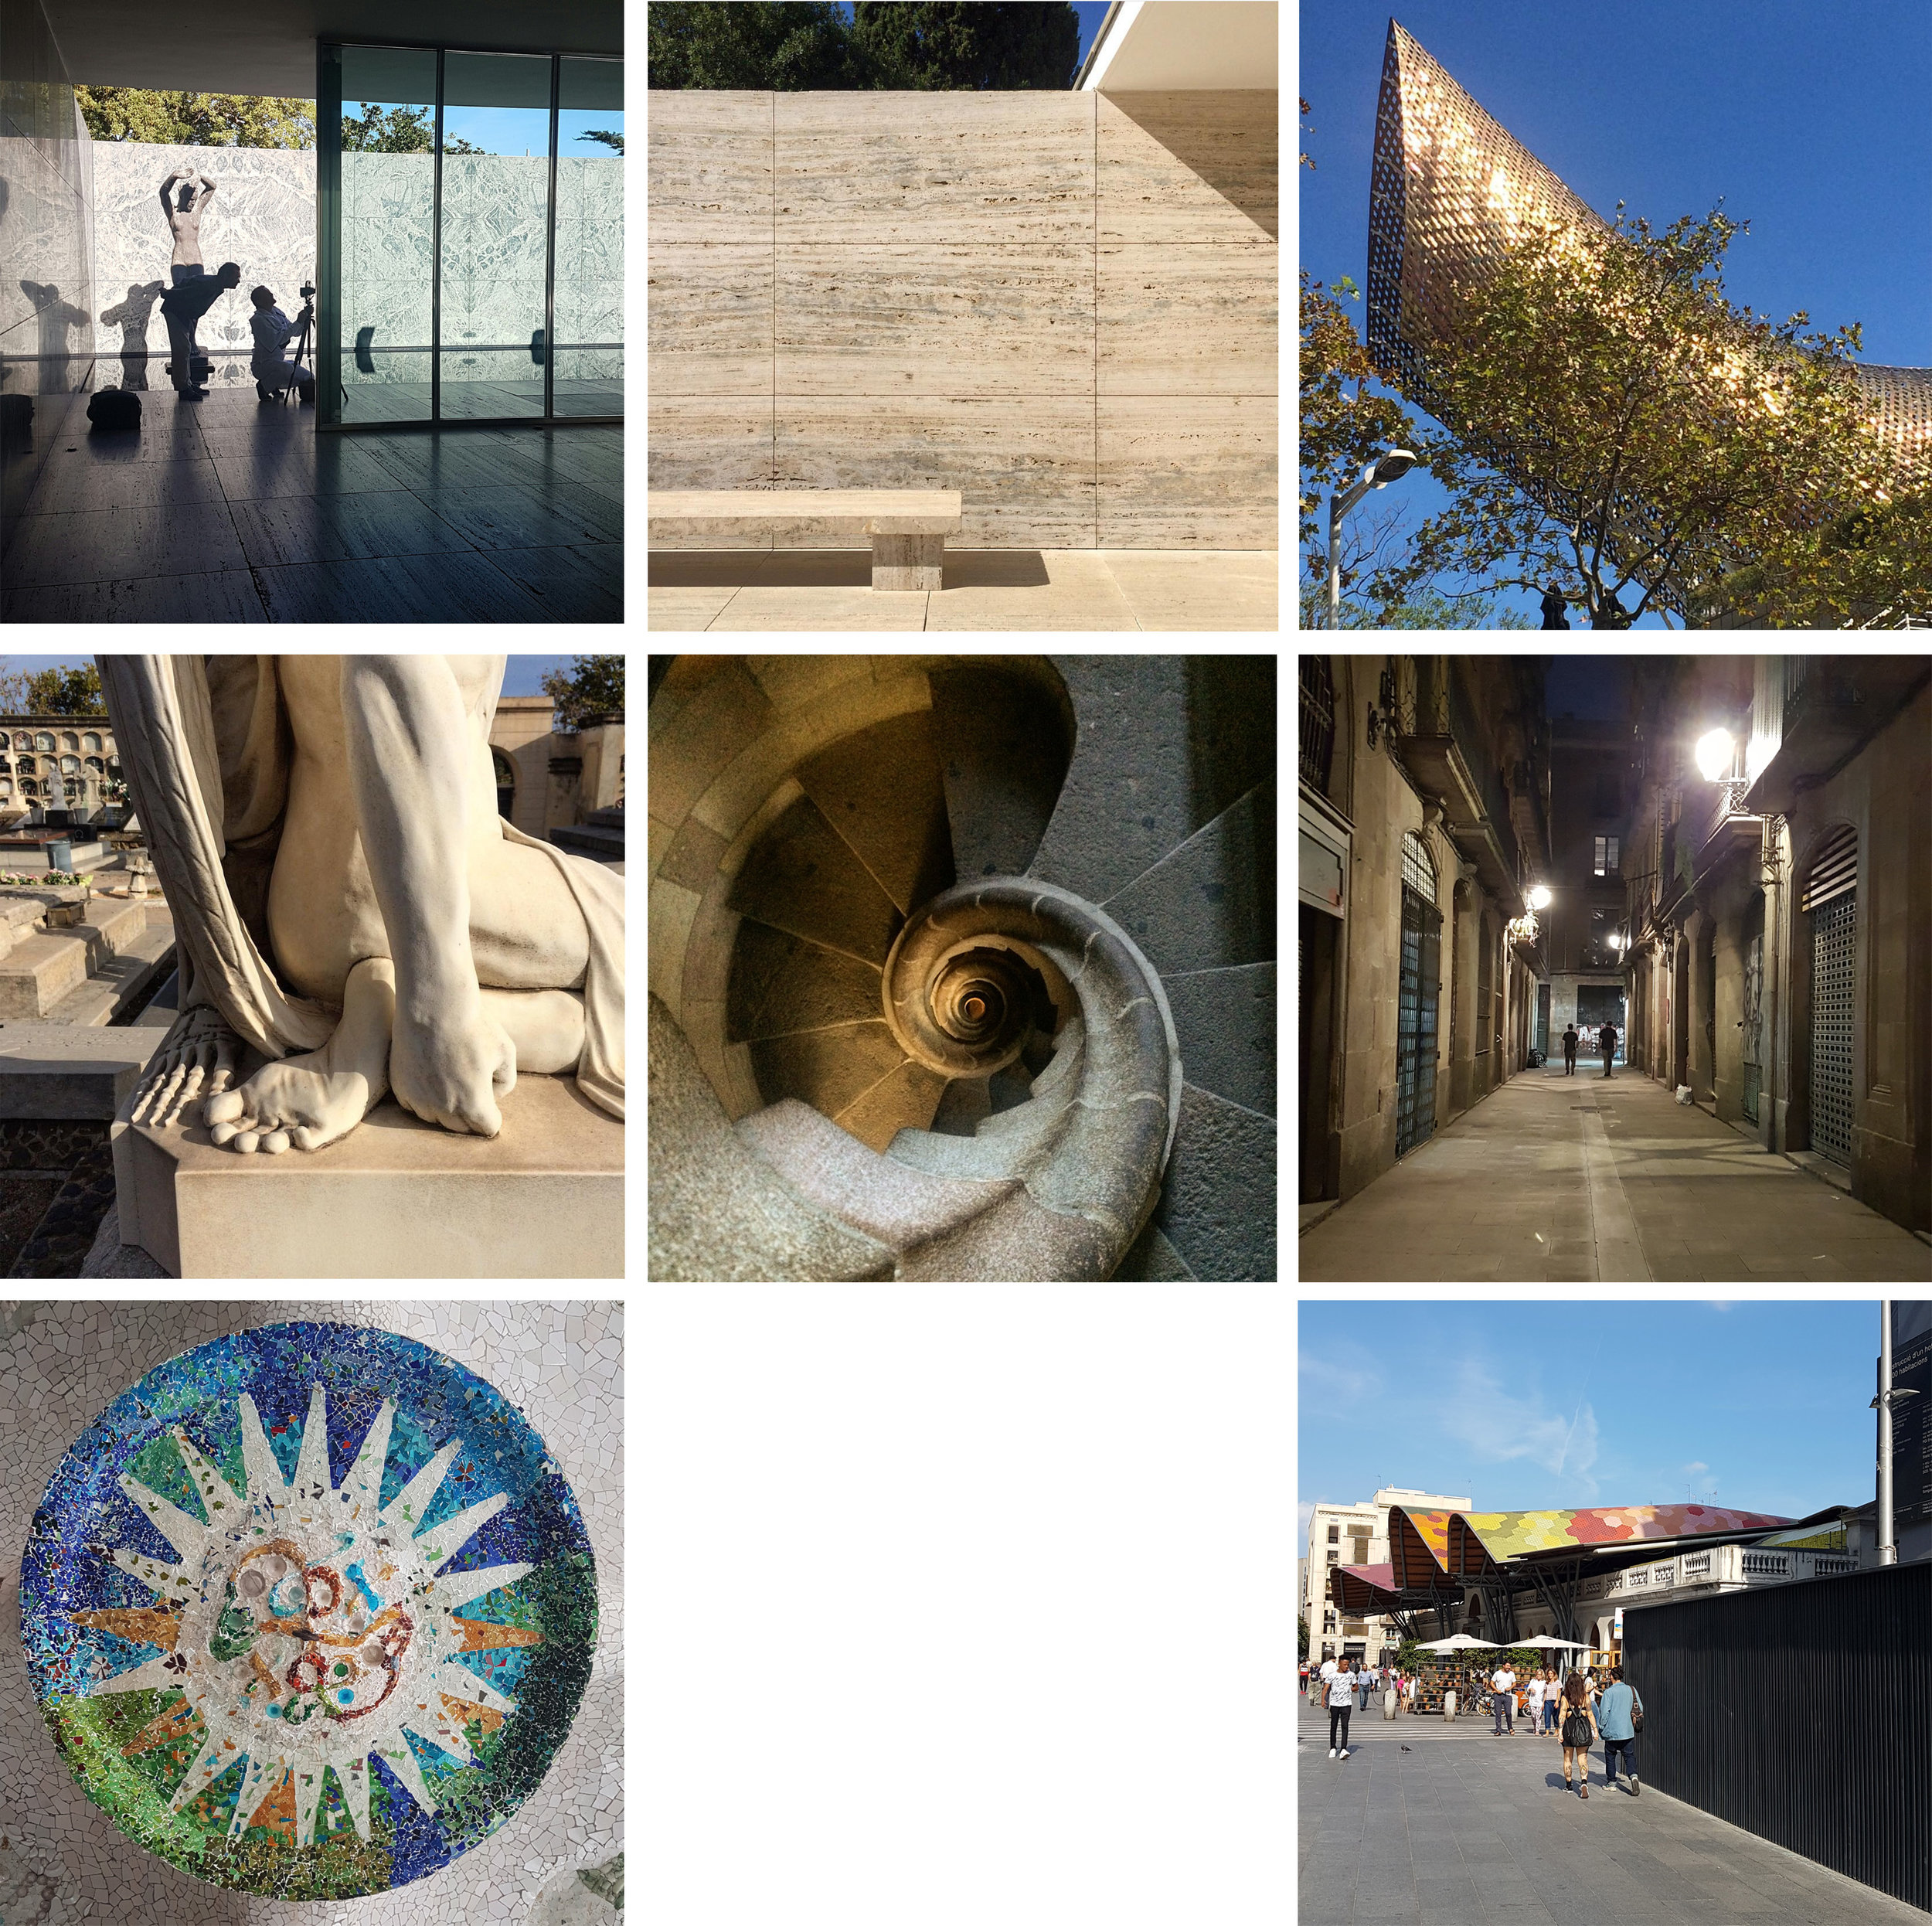 Left to right, top to bottom: Scenes from the Barcelona Pavilion; the tail end of Peix Olímpic; sculpture at Poblenou; stairs in Sagrada Familia; Kings of Bongo Bong en route to Bar Mariatchi; Gaudi mosaic; Santa Catarina Market